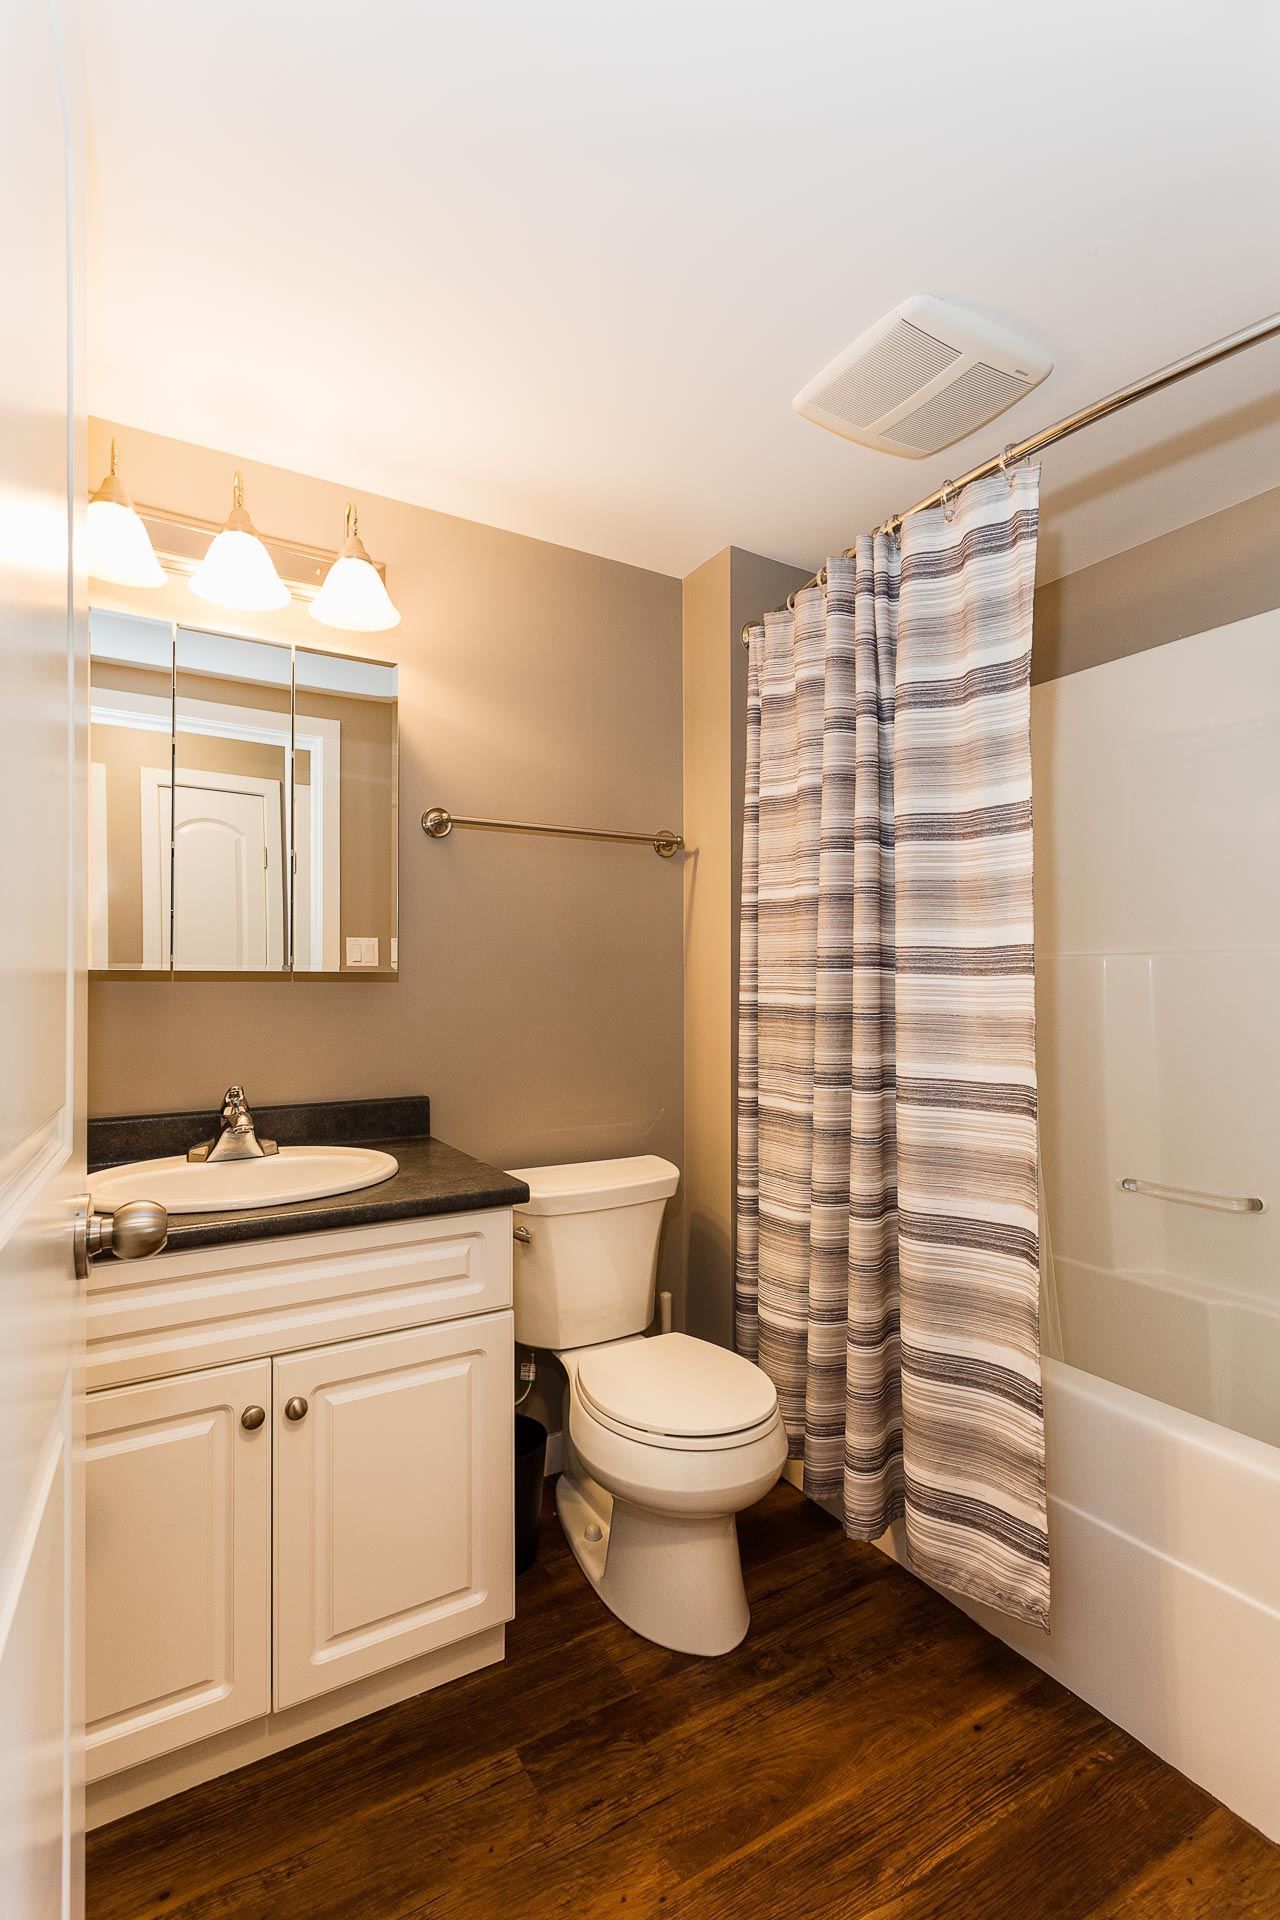 Furnished bathroom at Hillcrest Place Apartments in Kitimat, B.C.